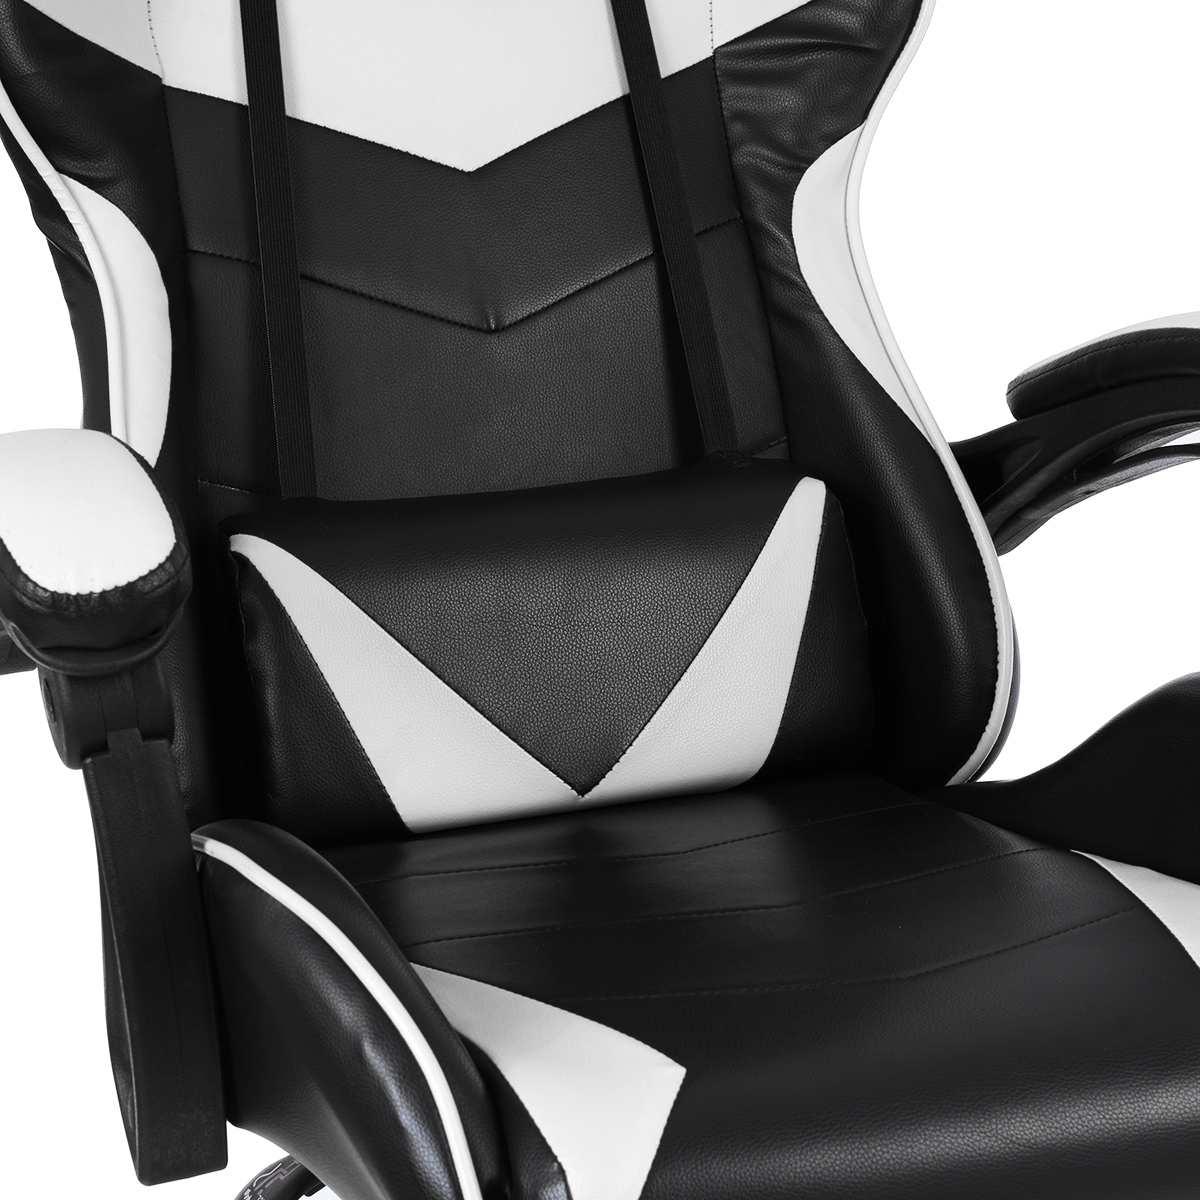 Hb308ee97867242499a3fec80071537eeg - Office Gaming Chair PVC Household Armchair Lift and Swivel Function Ergonomic Office Computer Chair Wcg Gamer Chairs